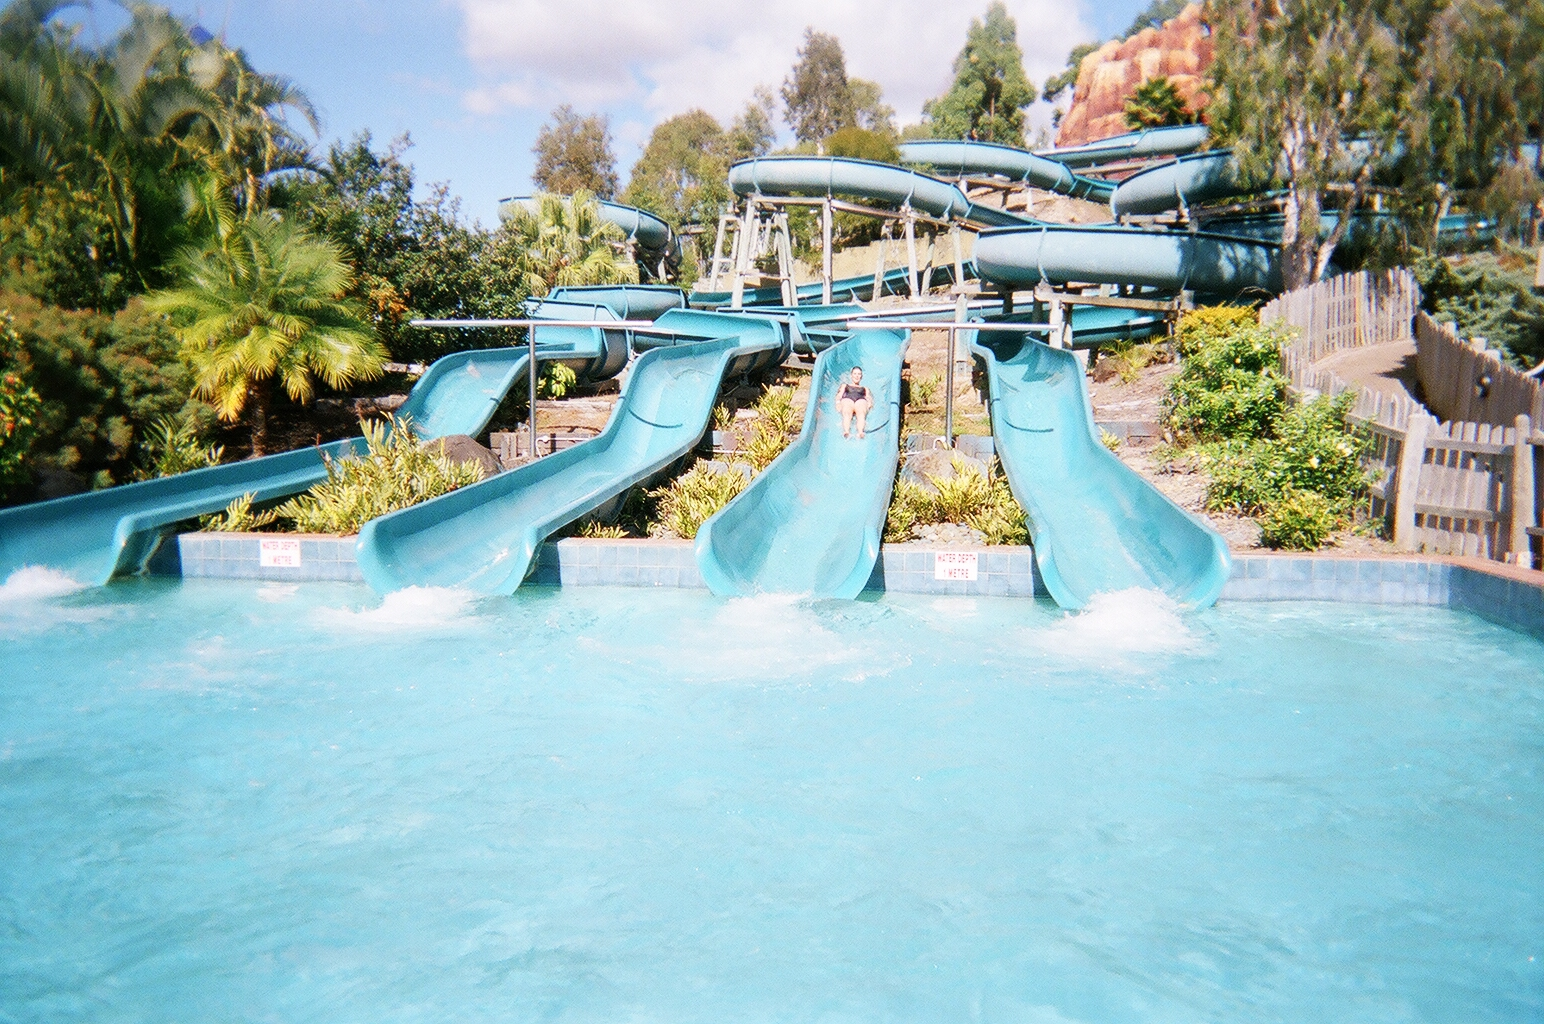 The 5 Biggest Waterparks to Visit this Summer